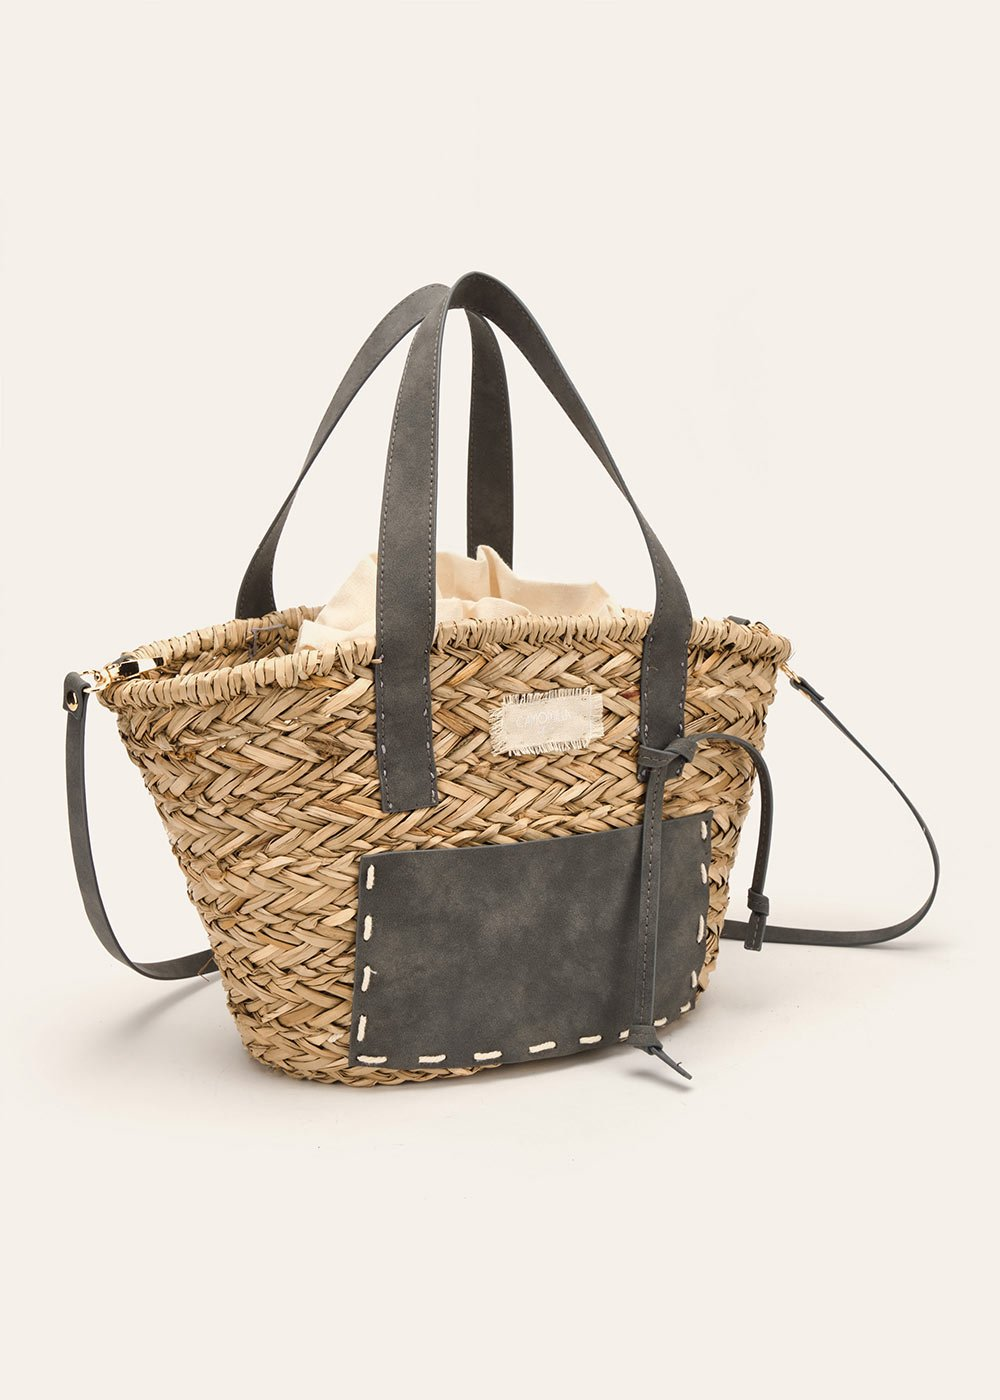 Bice straw shopping bag with faux-leather pocket - Beige  / Caviale - Woman